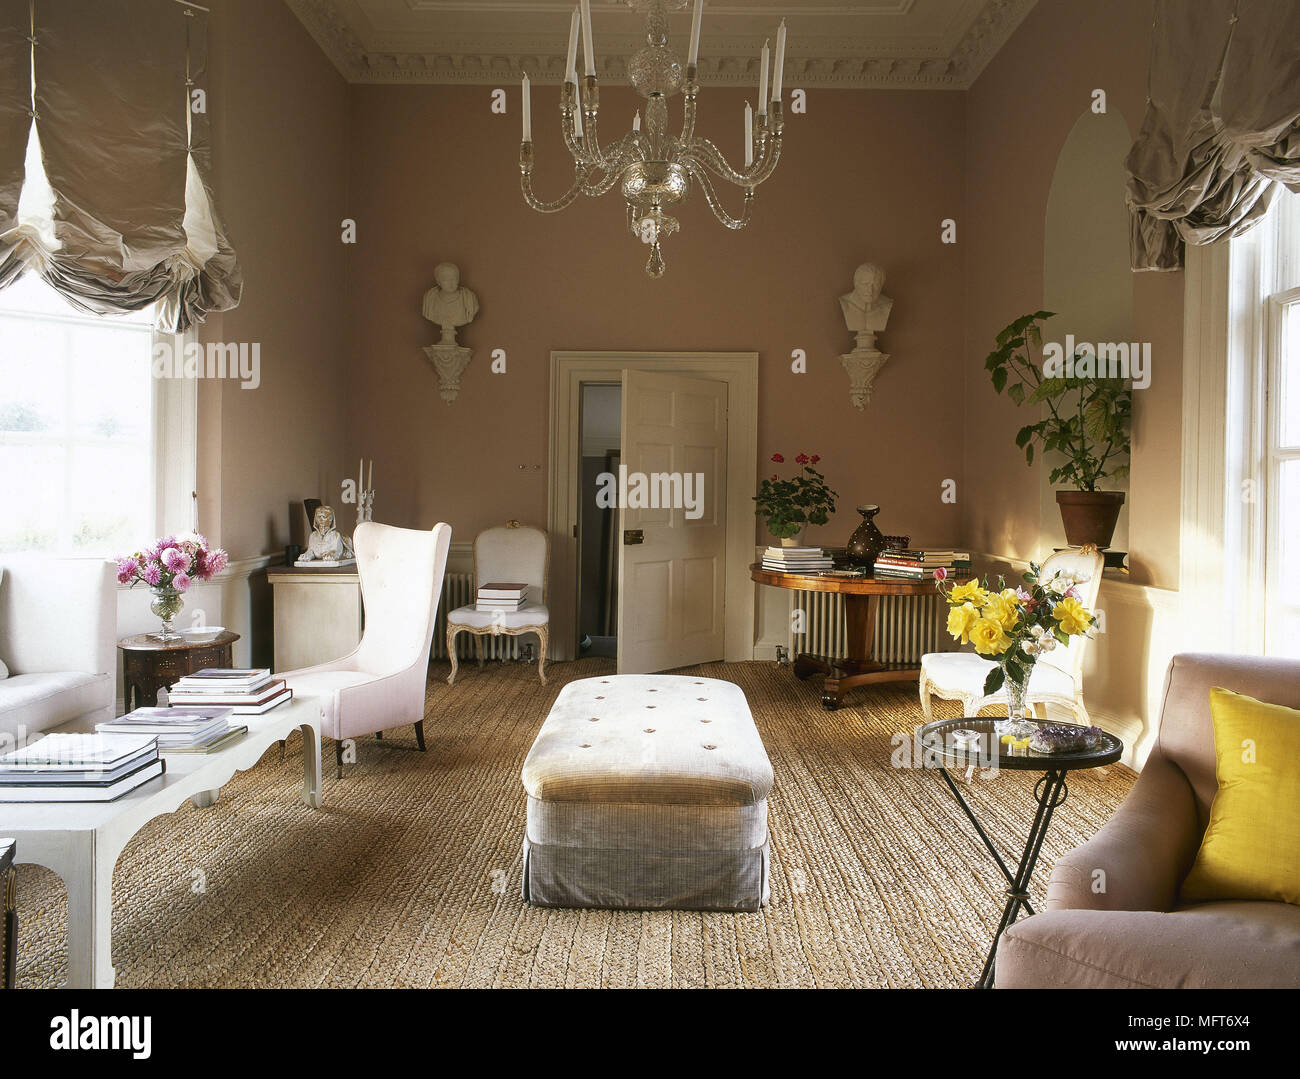 Traditional Peach Sitting Room Chandelier Austrian Blinds Armchair Footstool Interiors Rooms Window Treatments Drapes Warm Soft Colours Grand Opulent